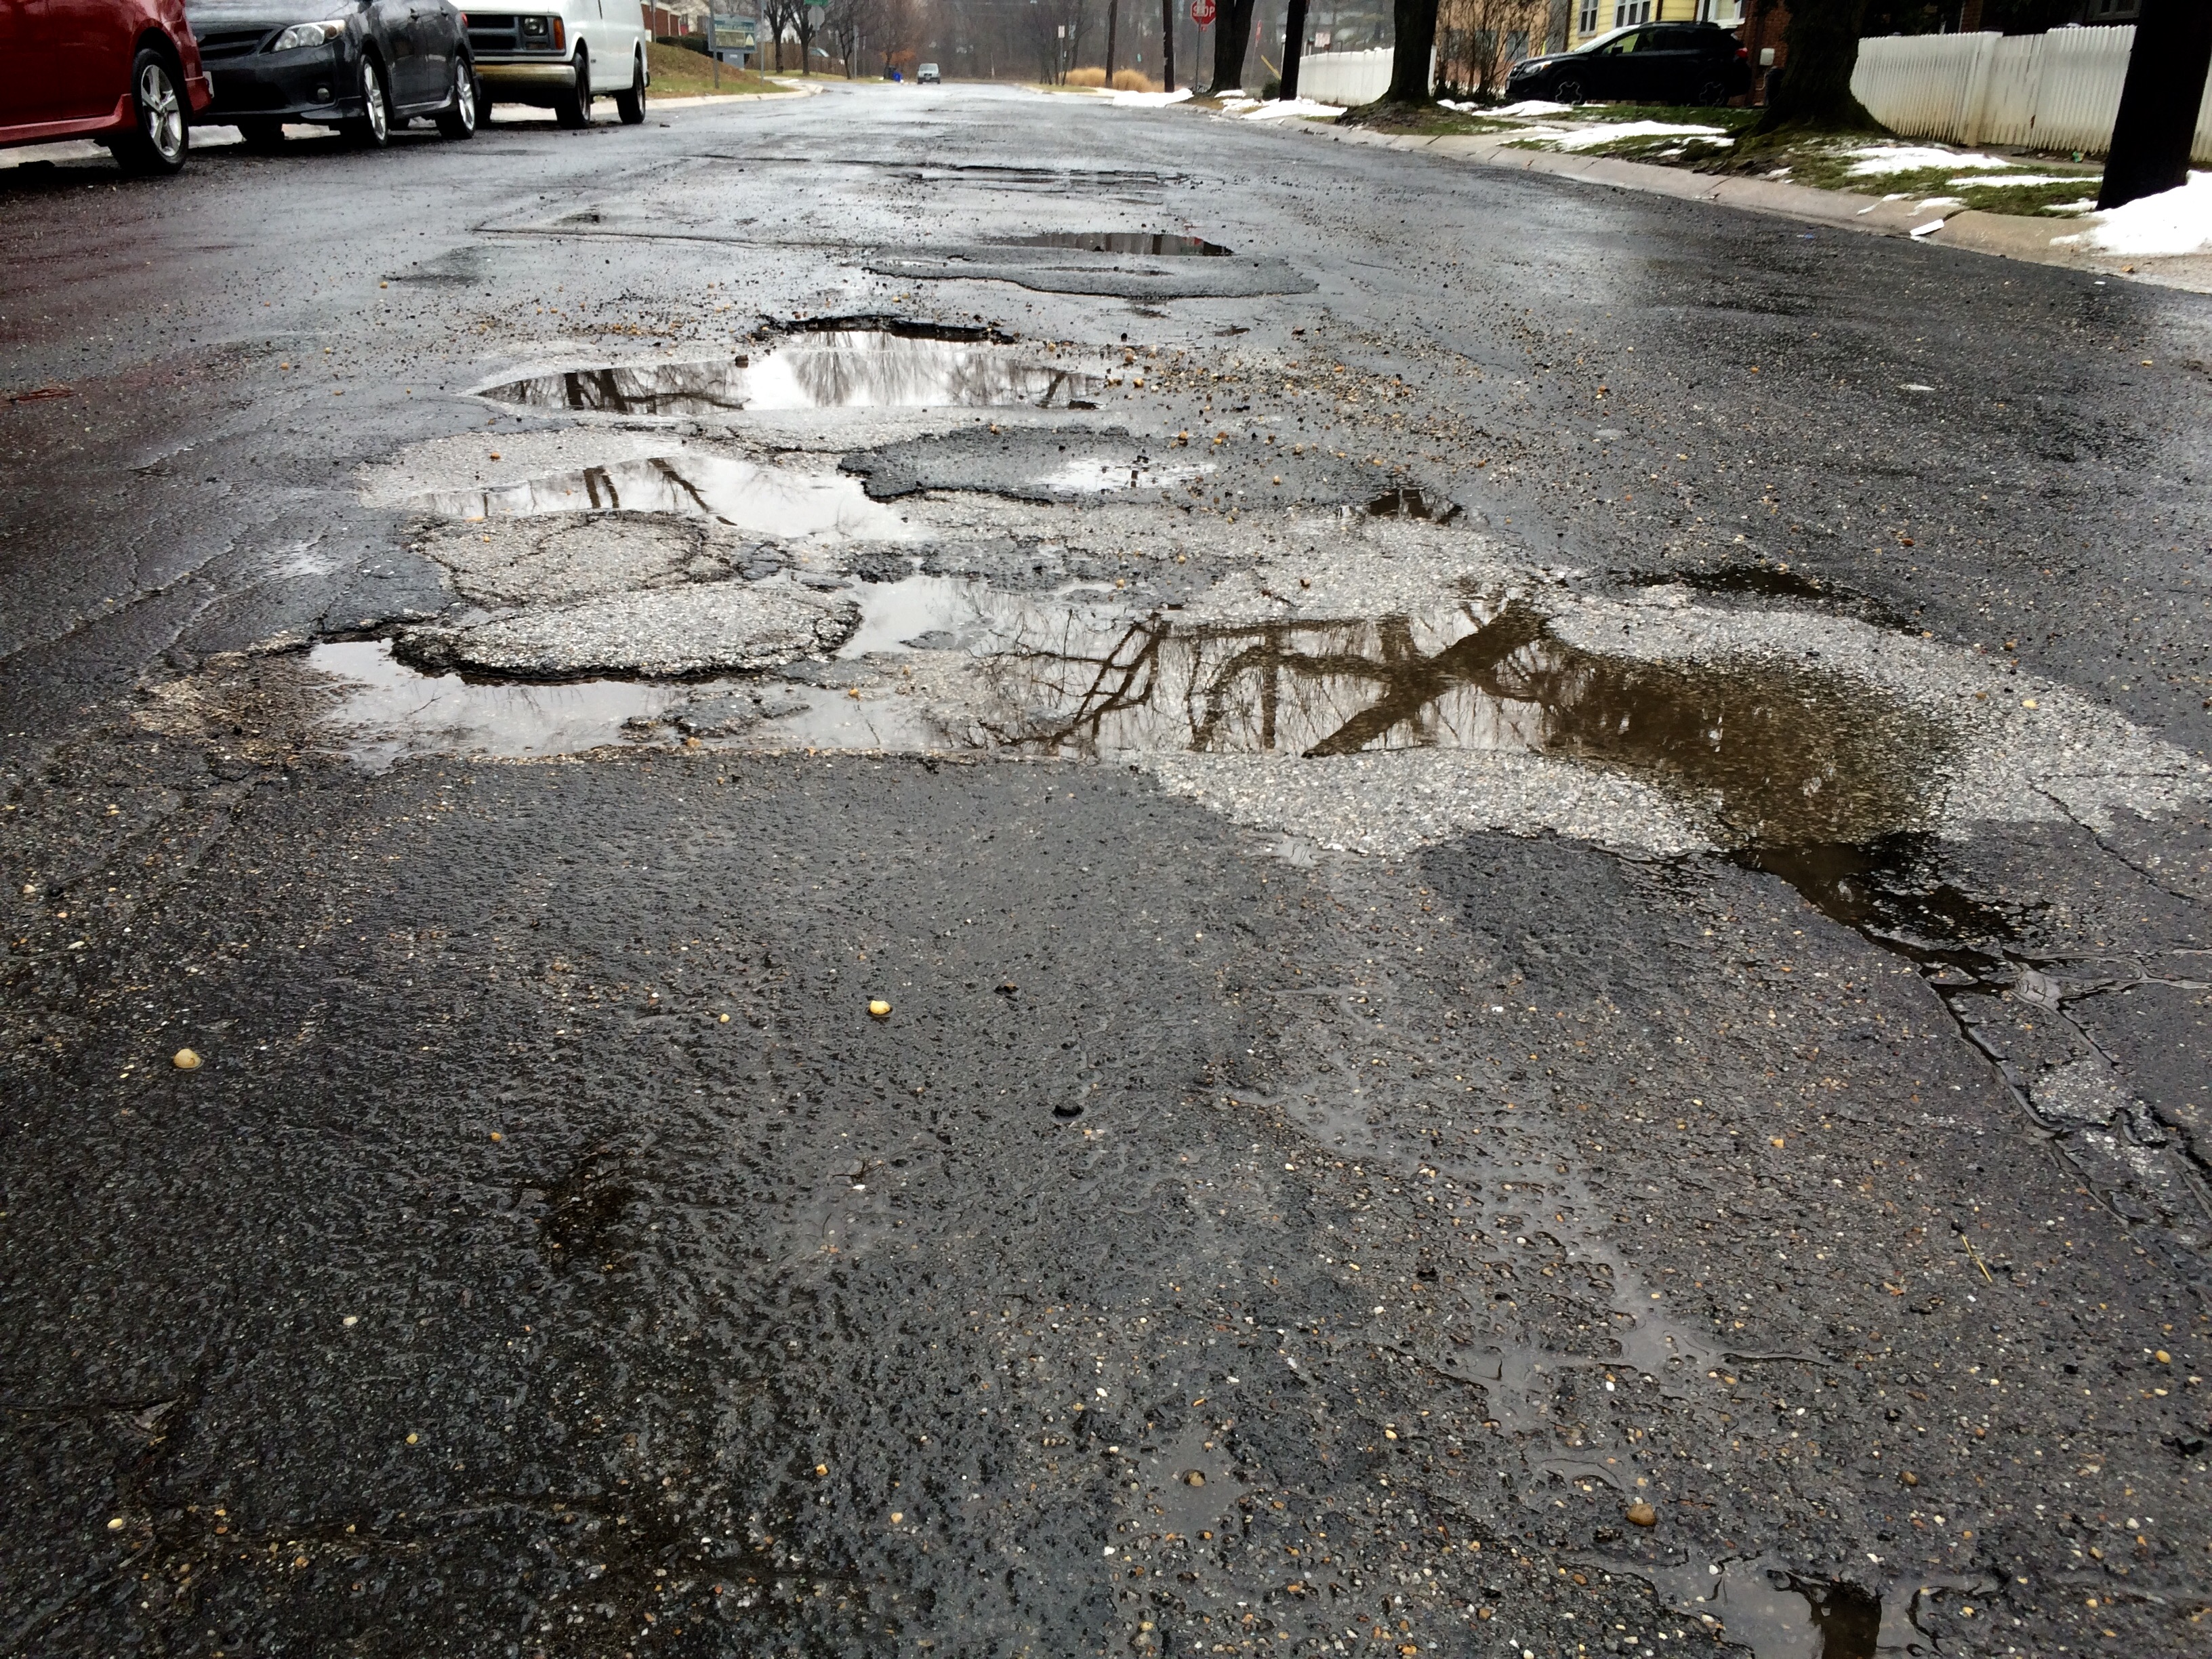 Pothole problems prompt Park Service to ask drivers to slow down, consider transit